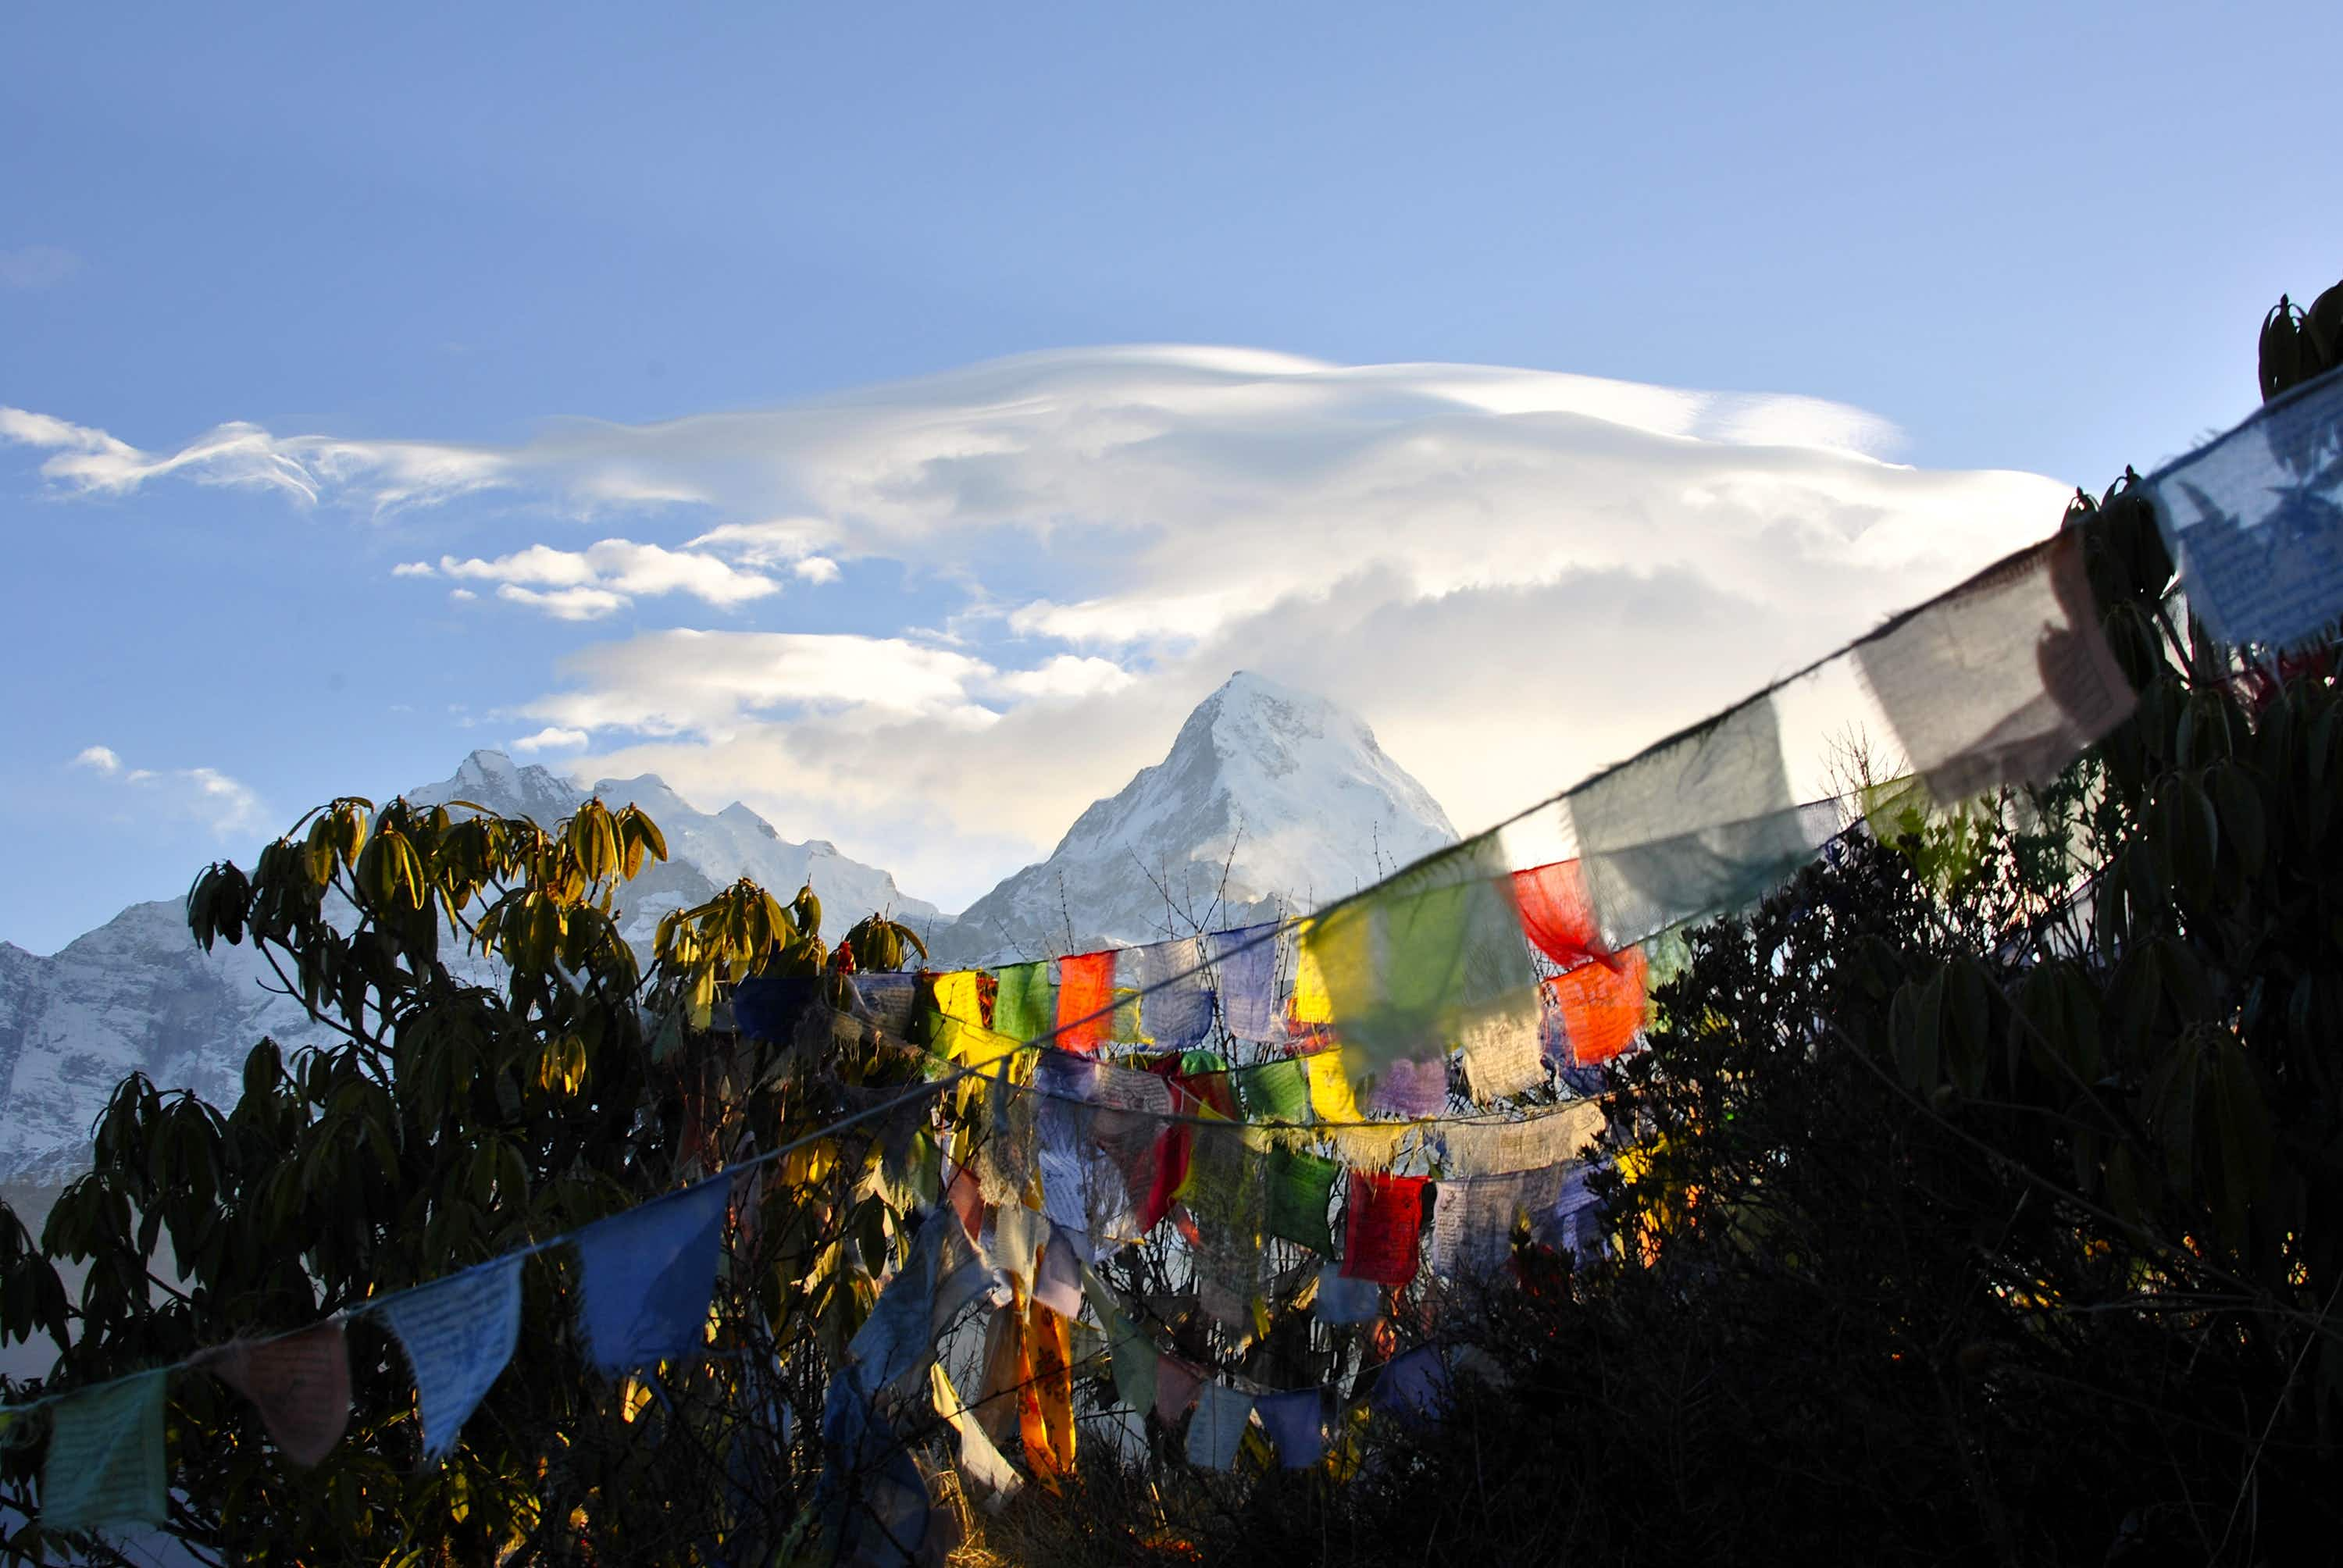 Responsible trekking in Nepal: tips for minimising your footprint